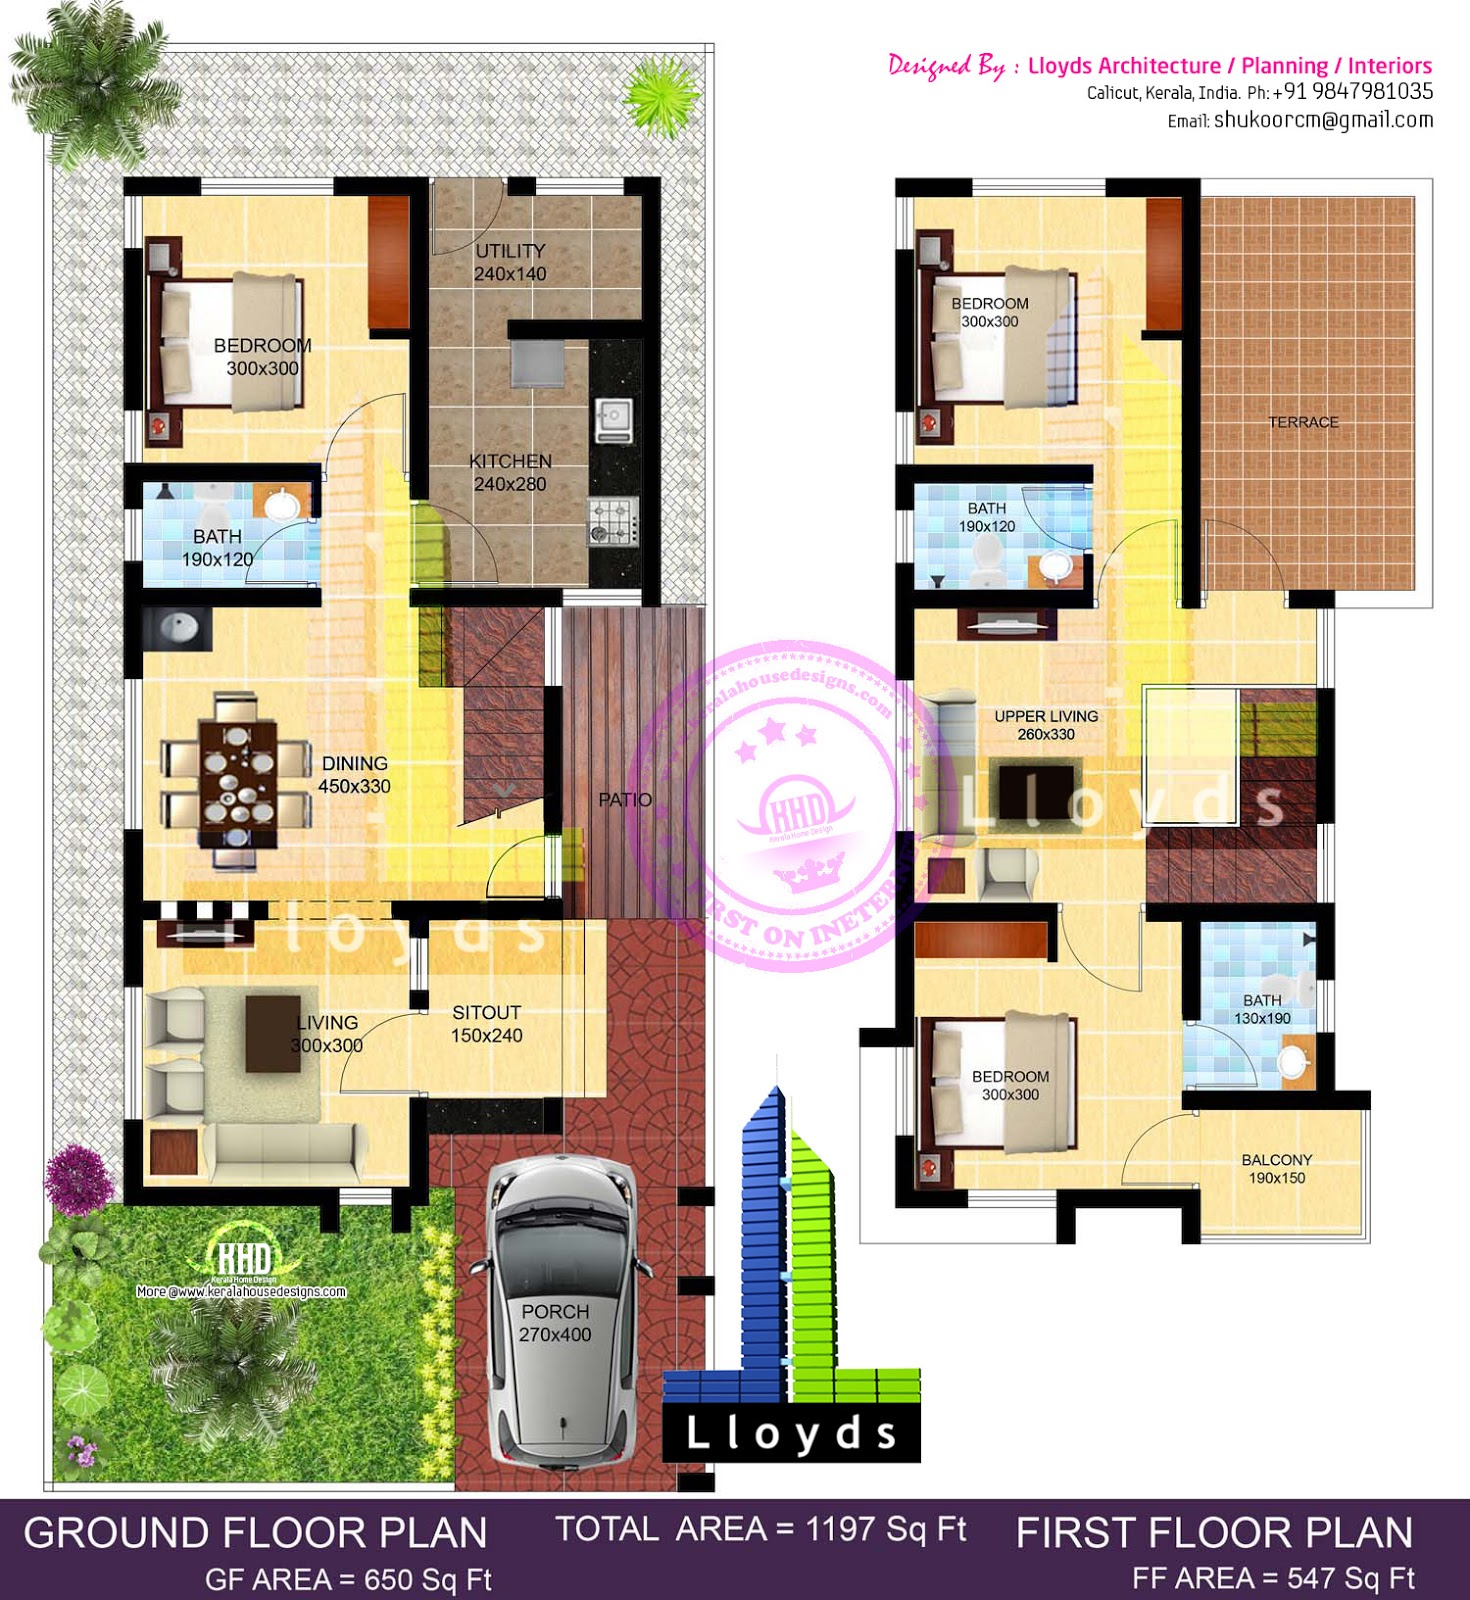 ... floor plan and elevation, Contact (Home design in Calicut [Kozhikode